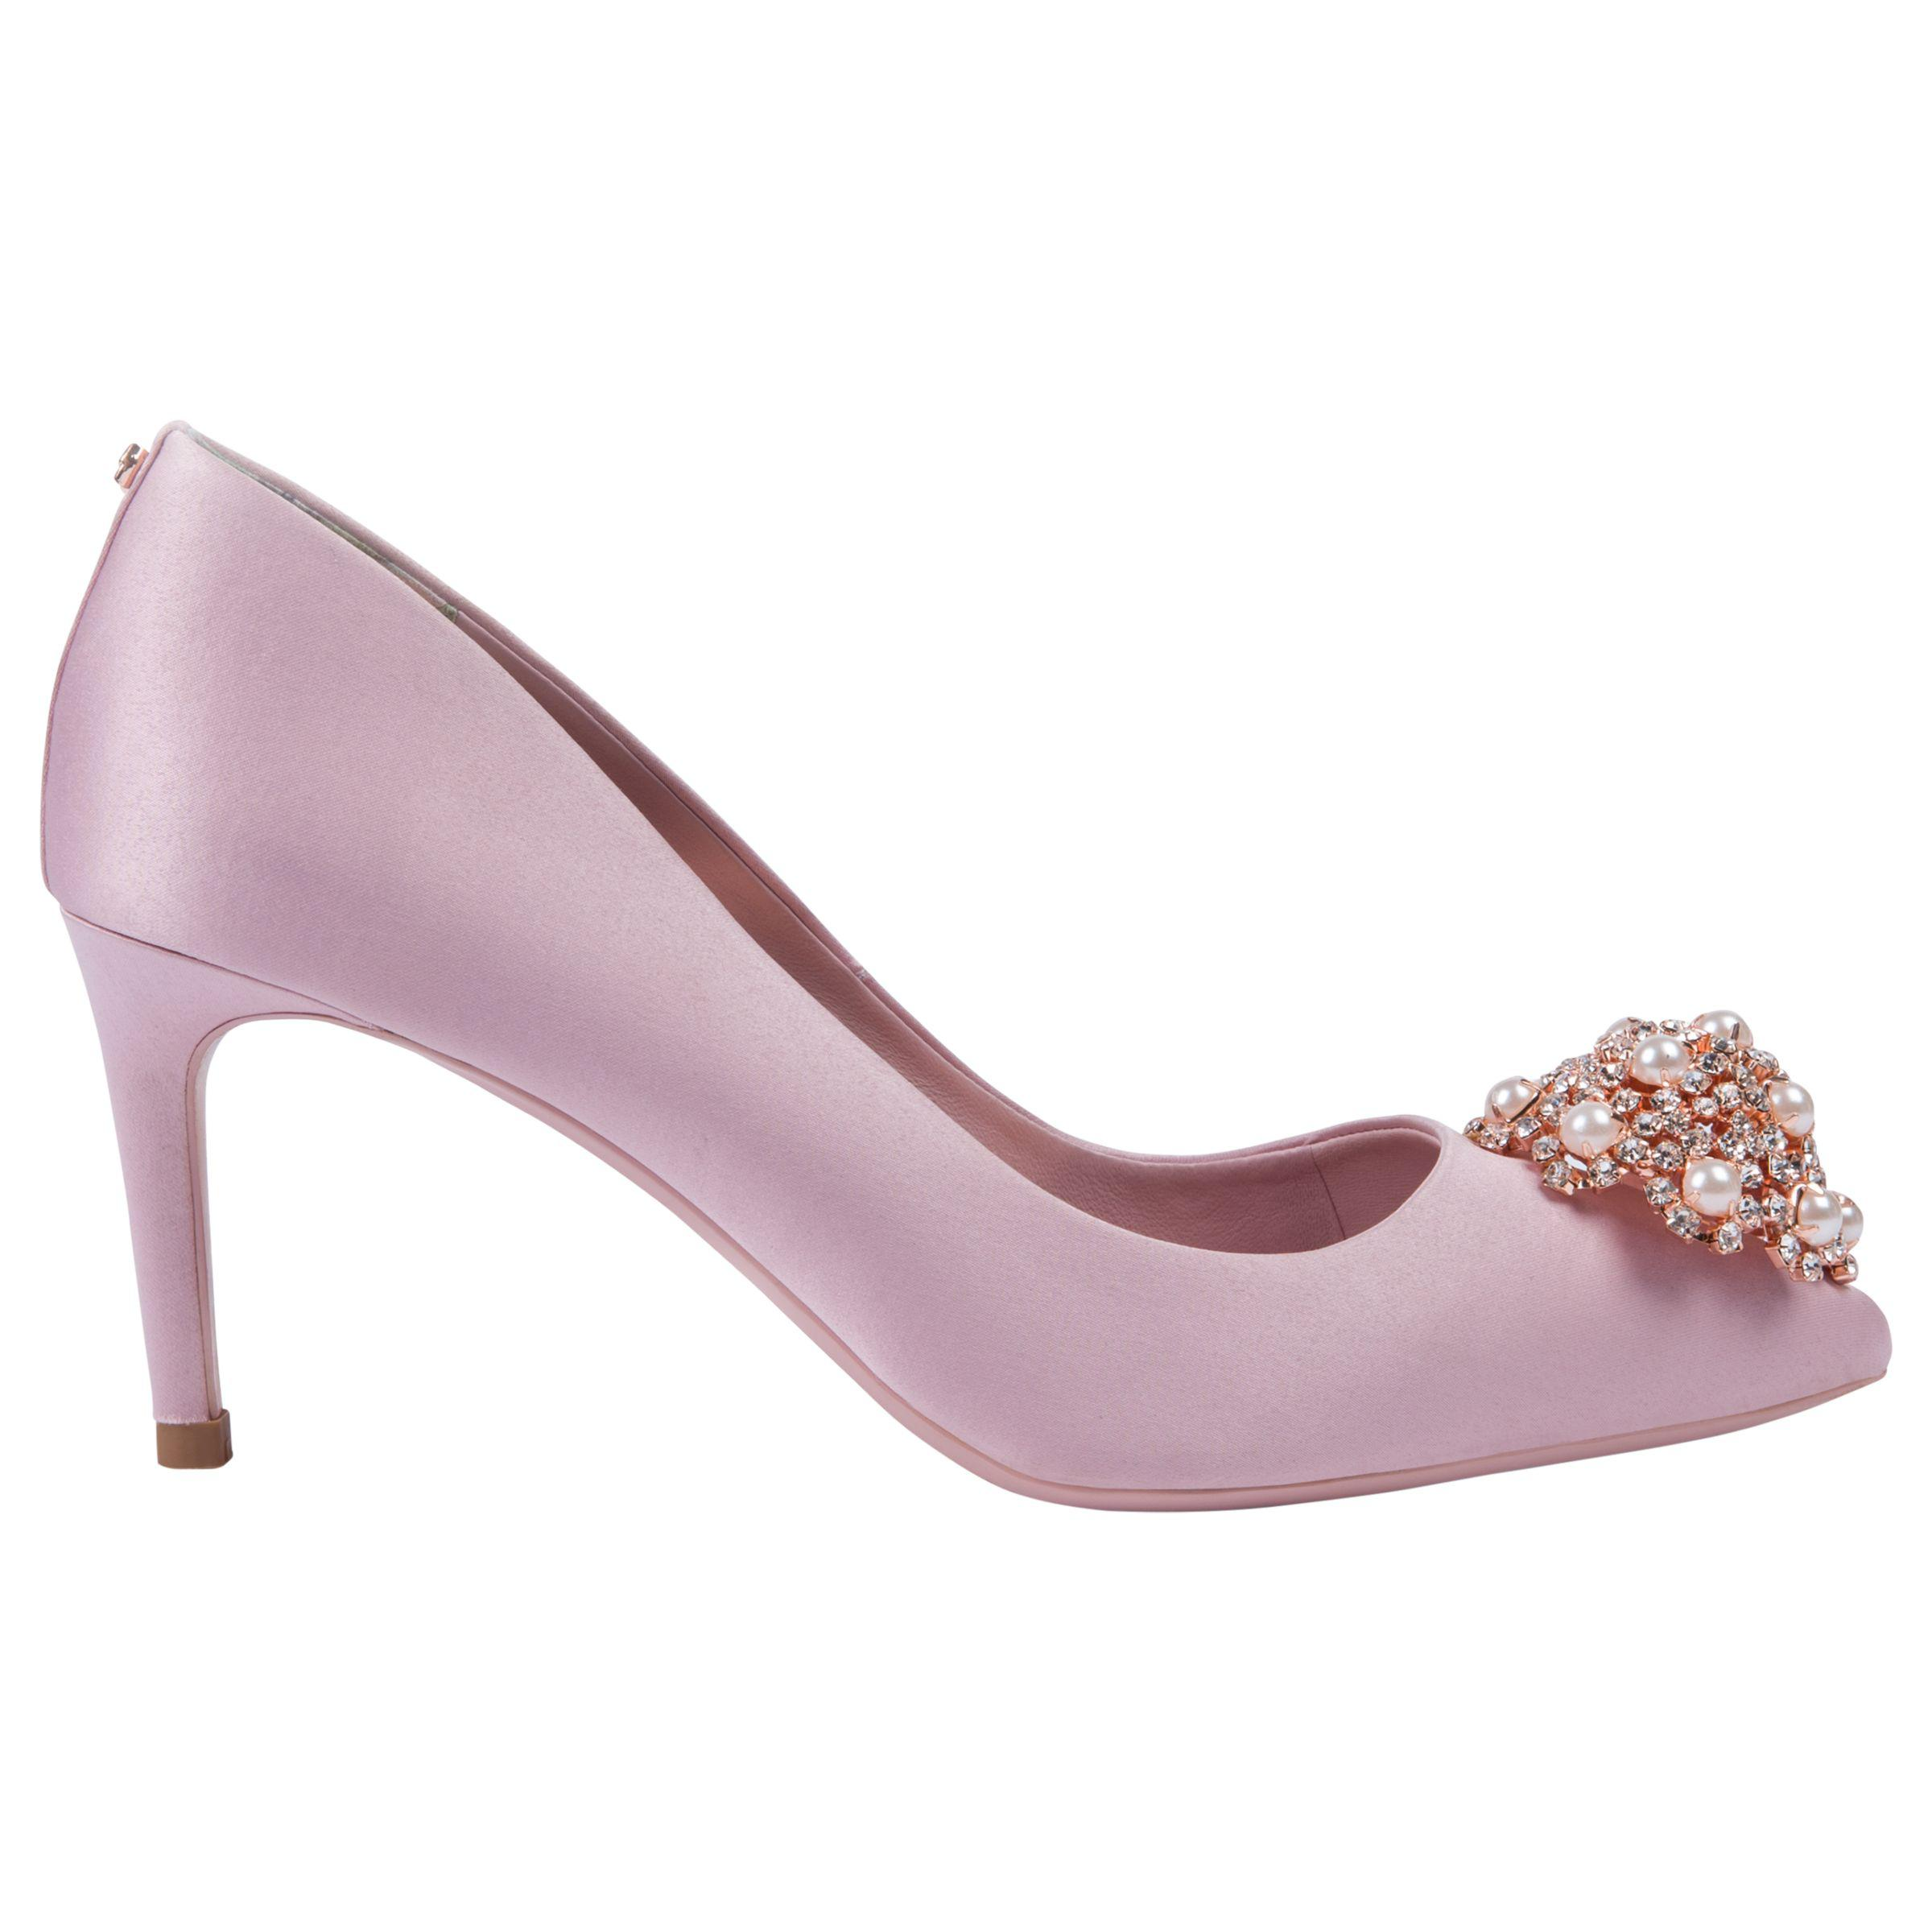 0213ef1b418 Ted Baker Dahrlin Embellished Court Shoes in Pink - Lyst